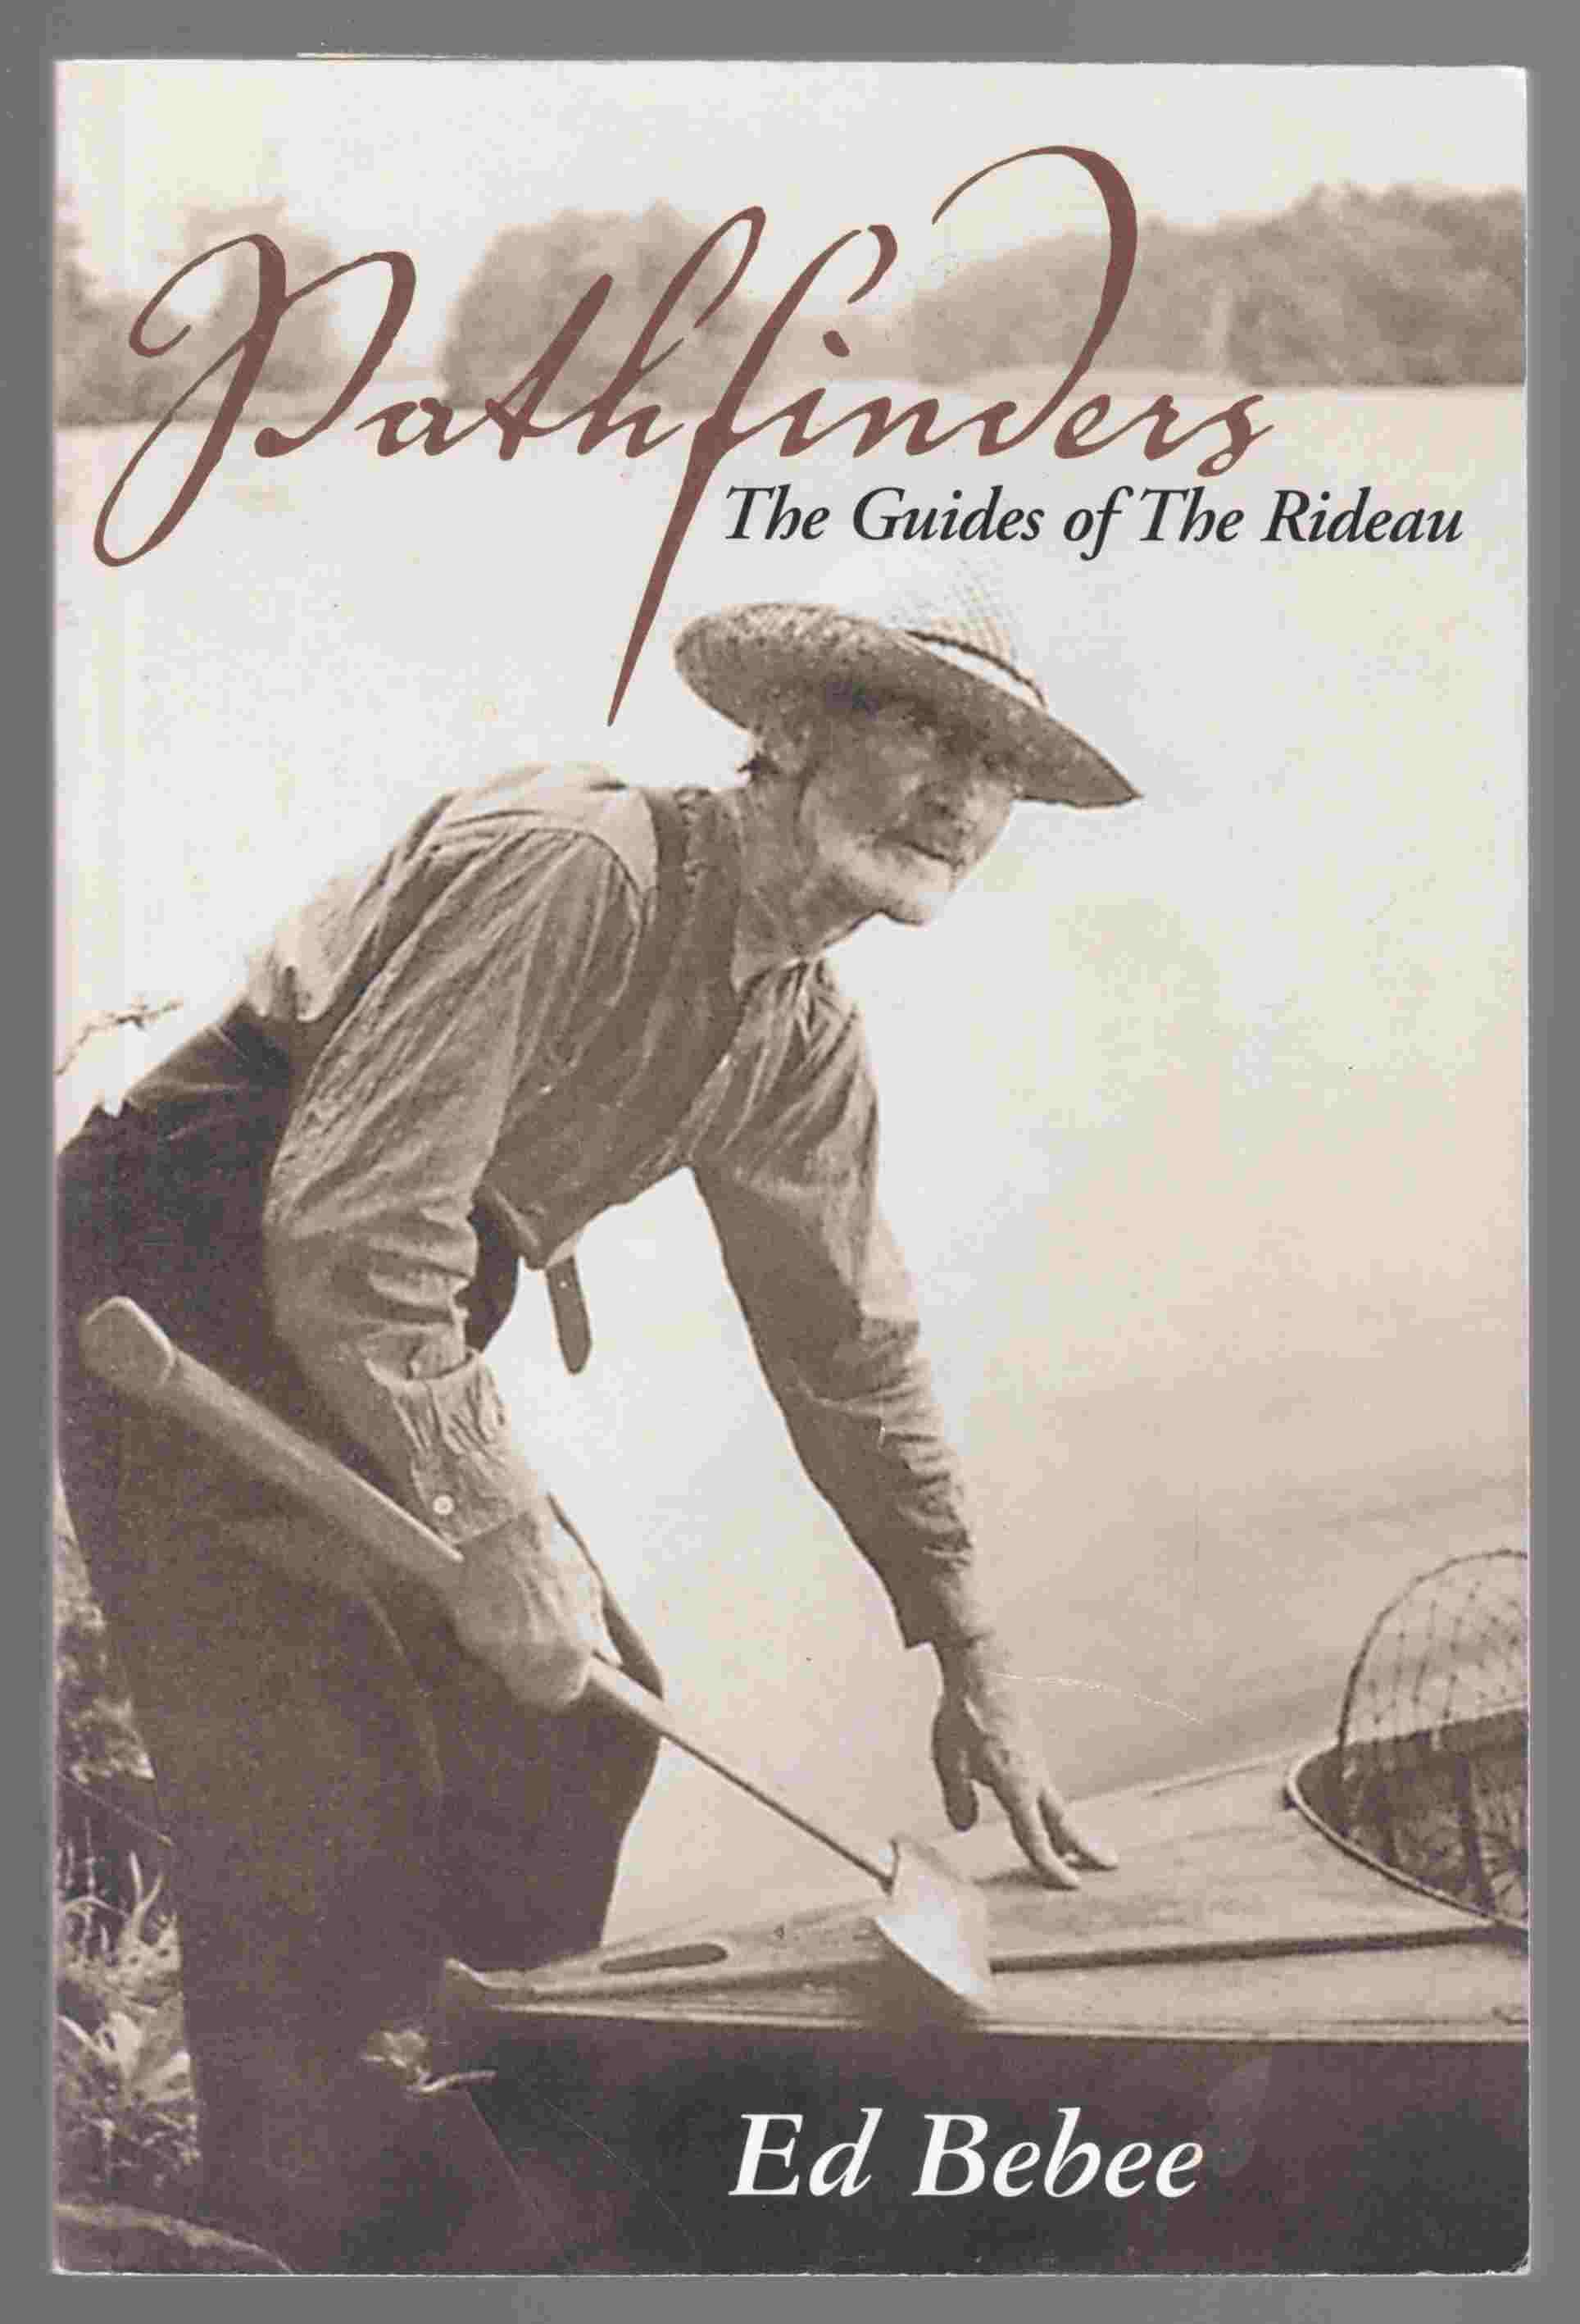 Image for Pathfinders Guides of the Rideau